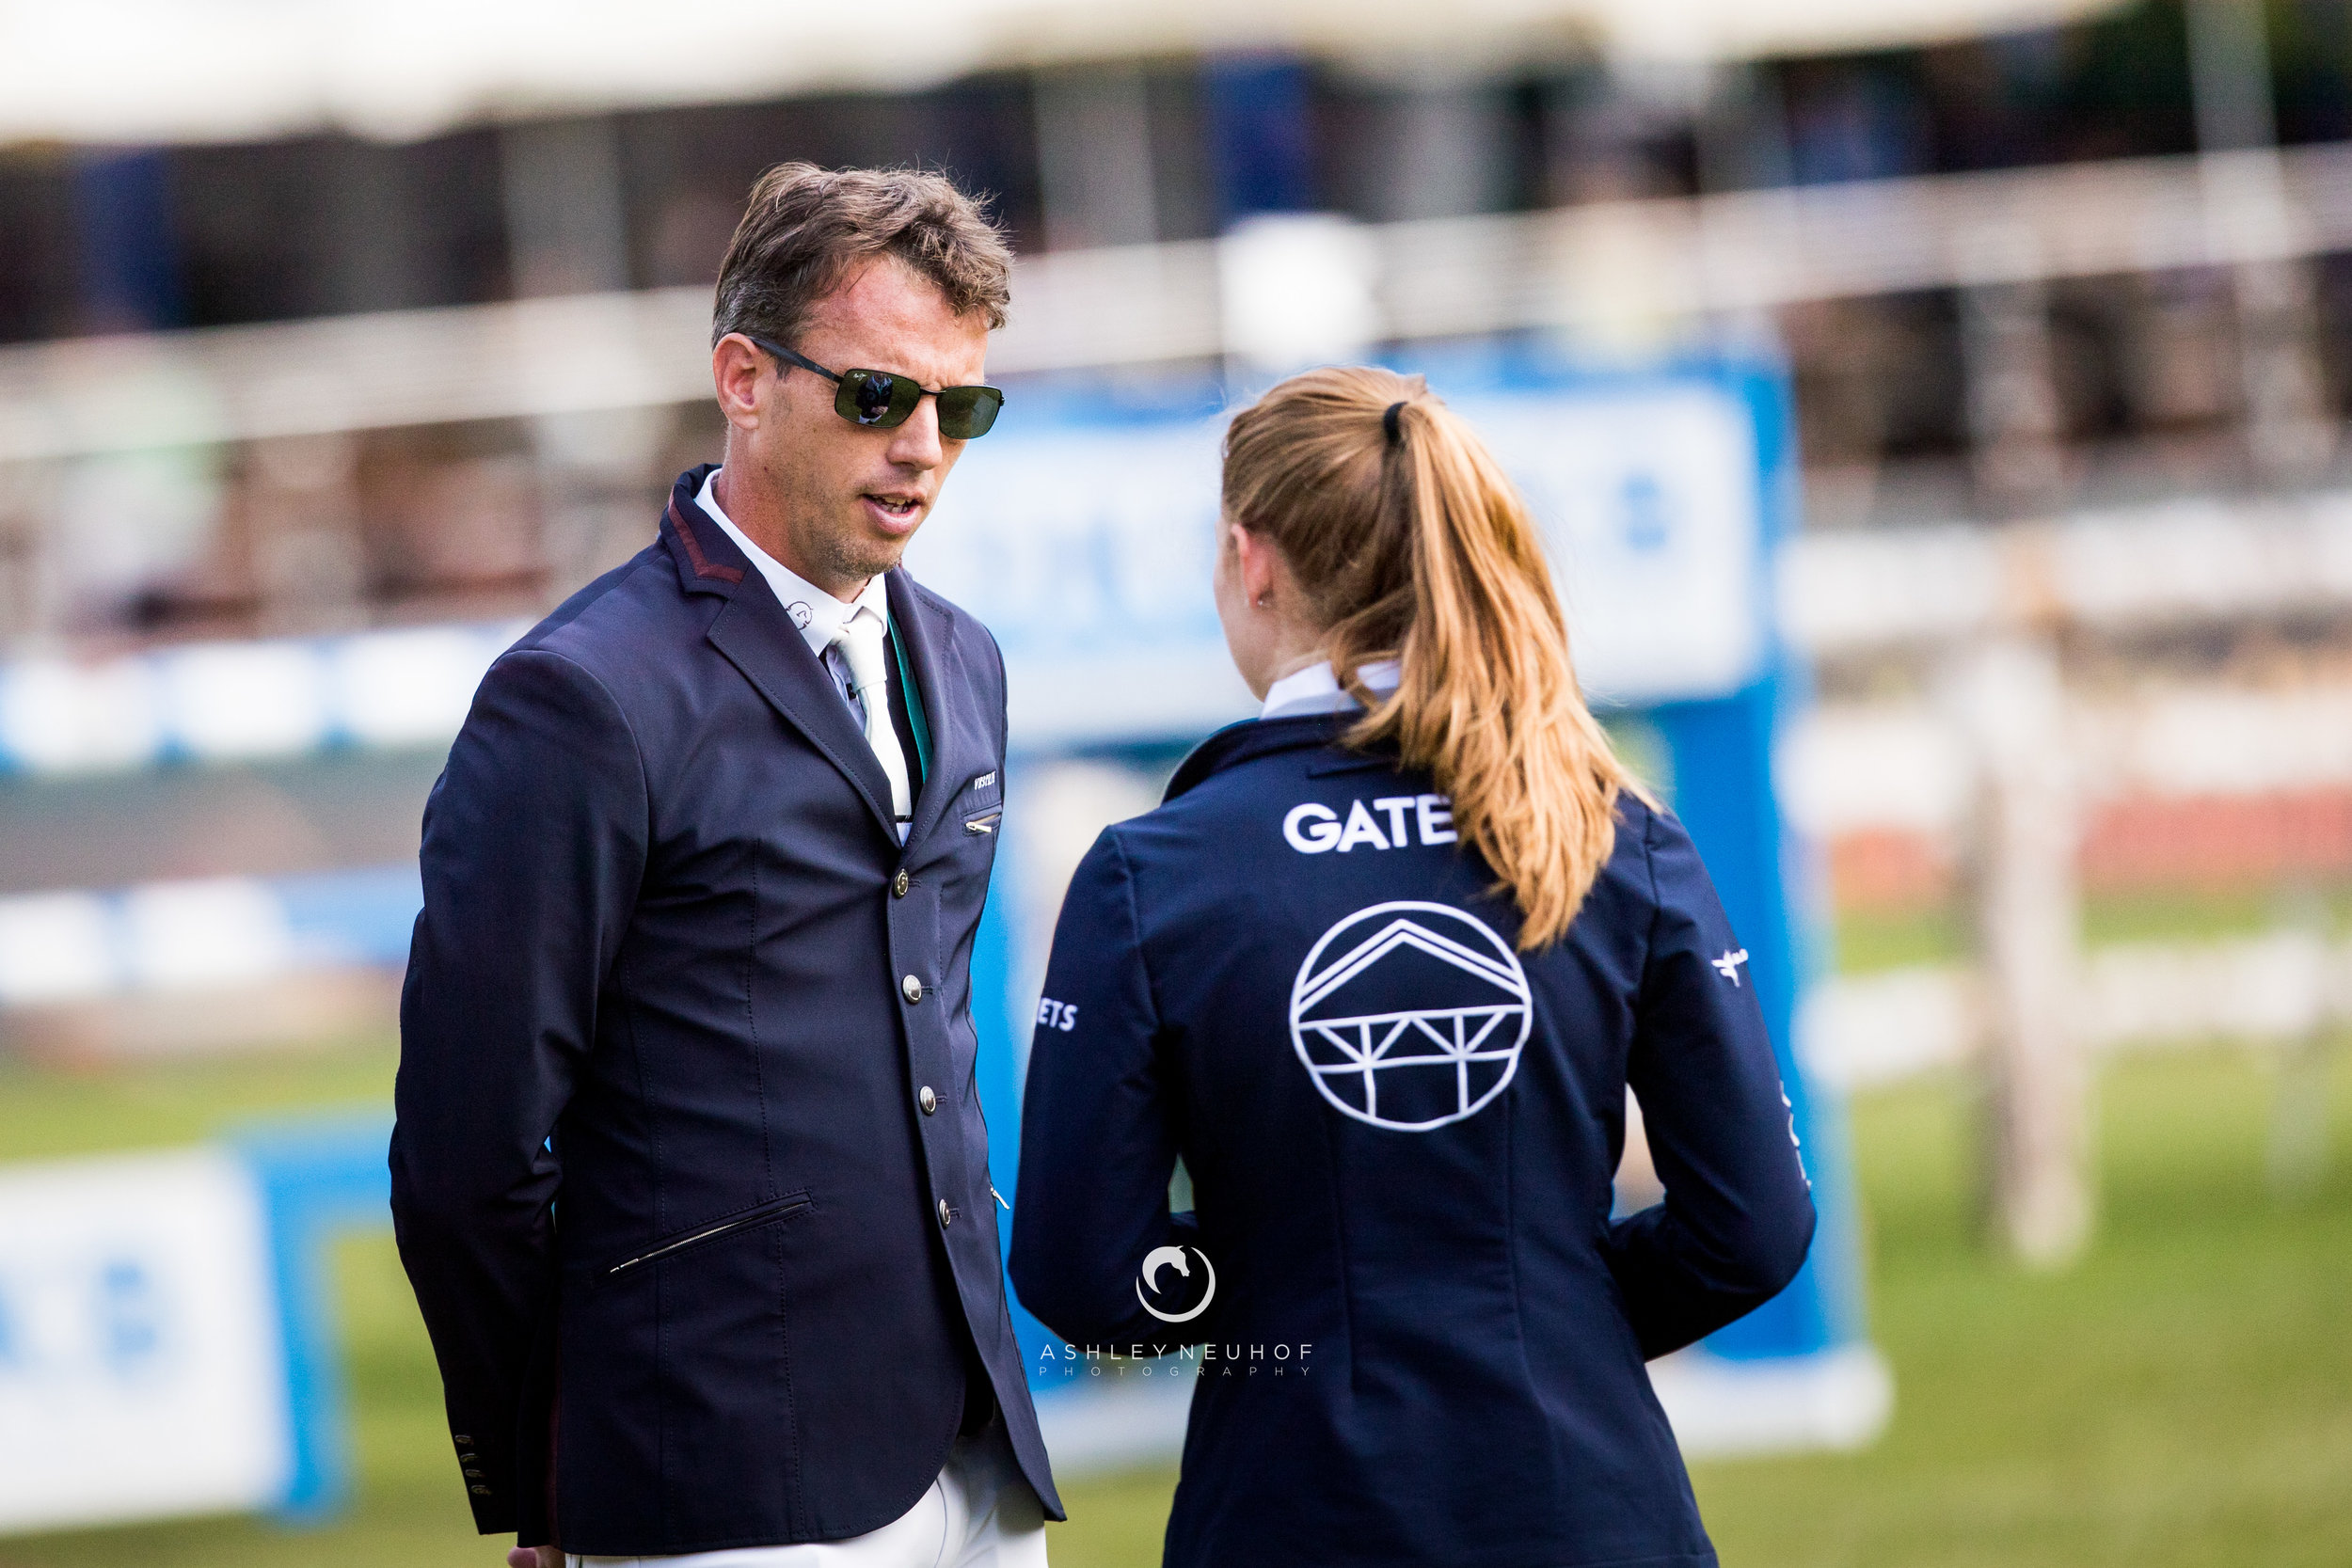 Harrie Smolders and Jenn Gates at Longines Global Champions Tour of Hamburg 2019. Photo by Ashley Neuhof Photography.